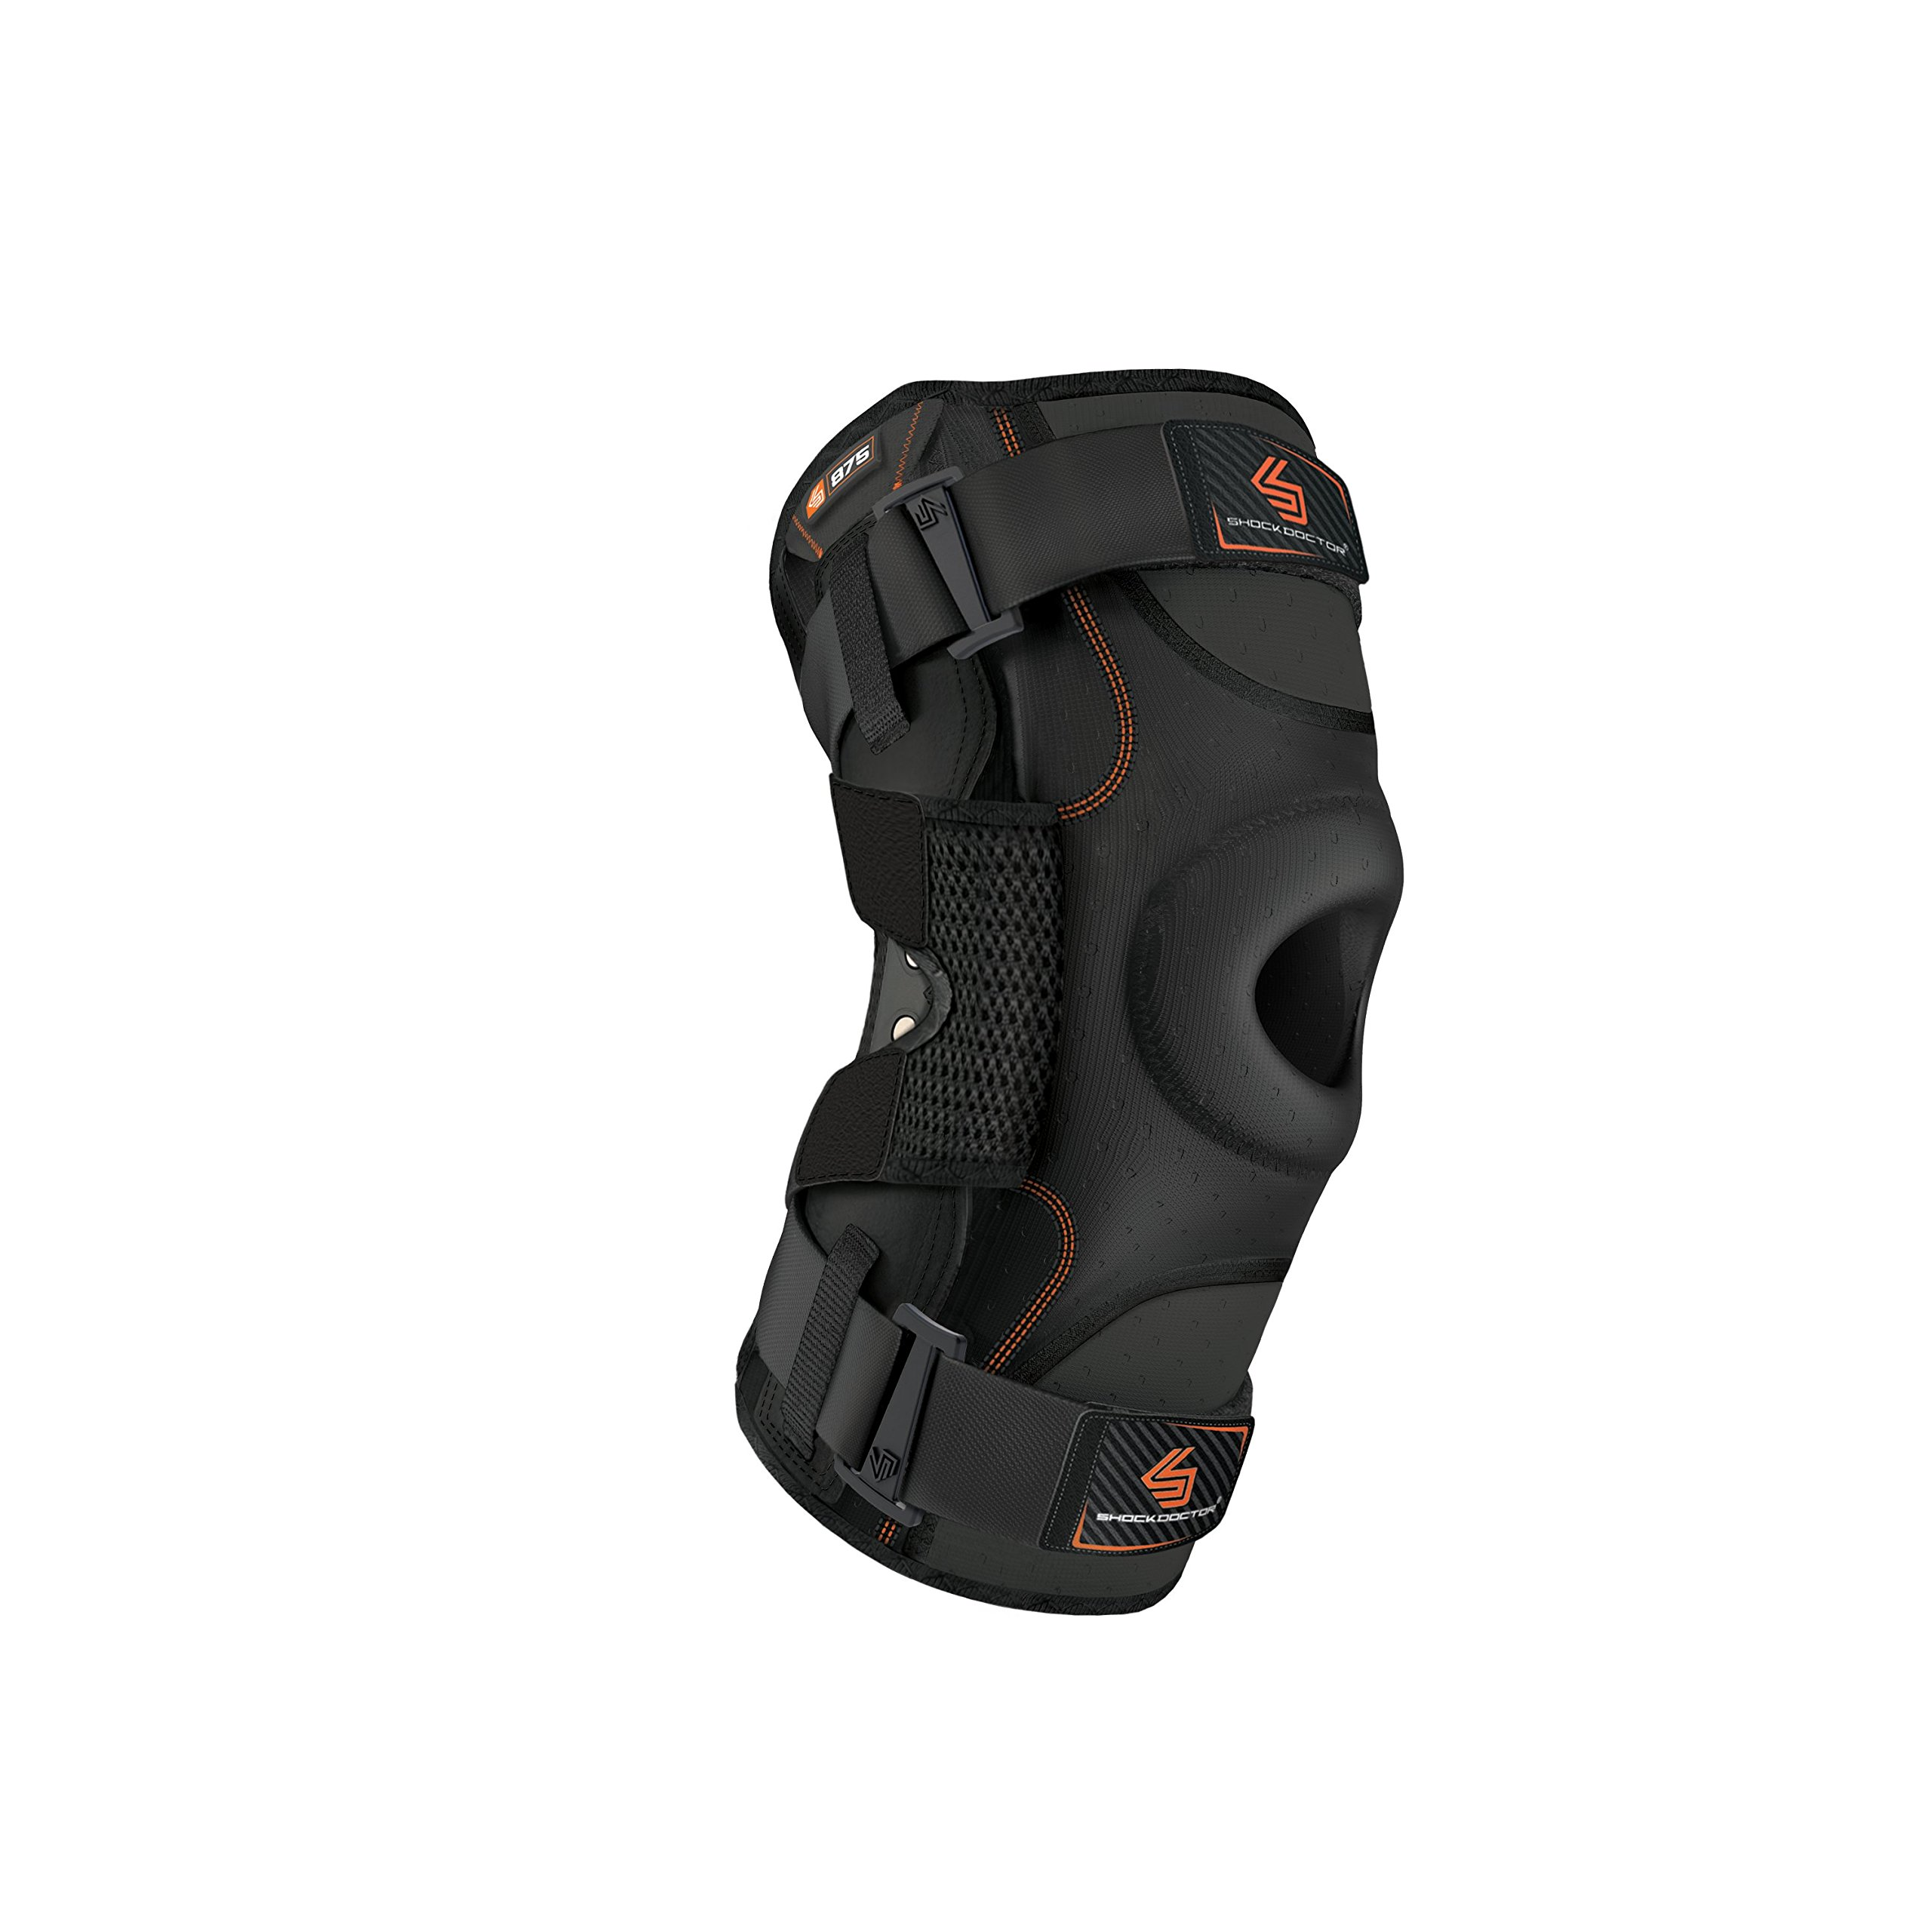 Hinged Knee Brace: Shock Doctor Maximum Support Compression Knee Brace - For ACL/PCL Injuries, Patella Support, Sprains, Hypertension and More for Men and Women - (1 Knee Brace, Large) by Shock Doctor (Image #1)